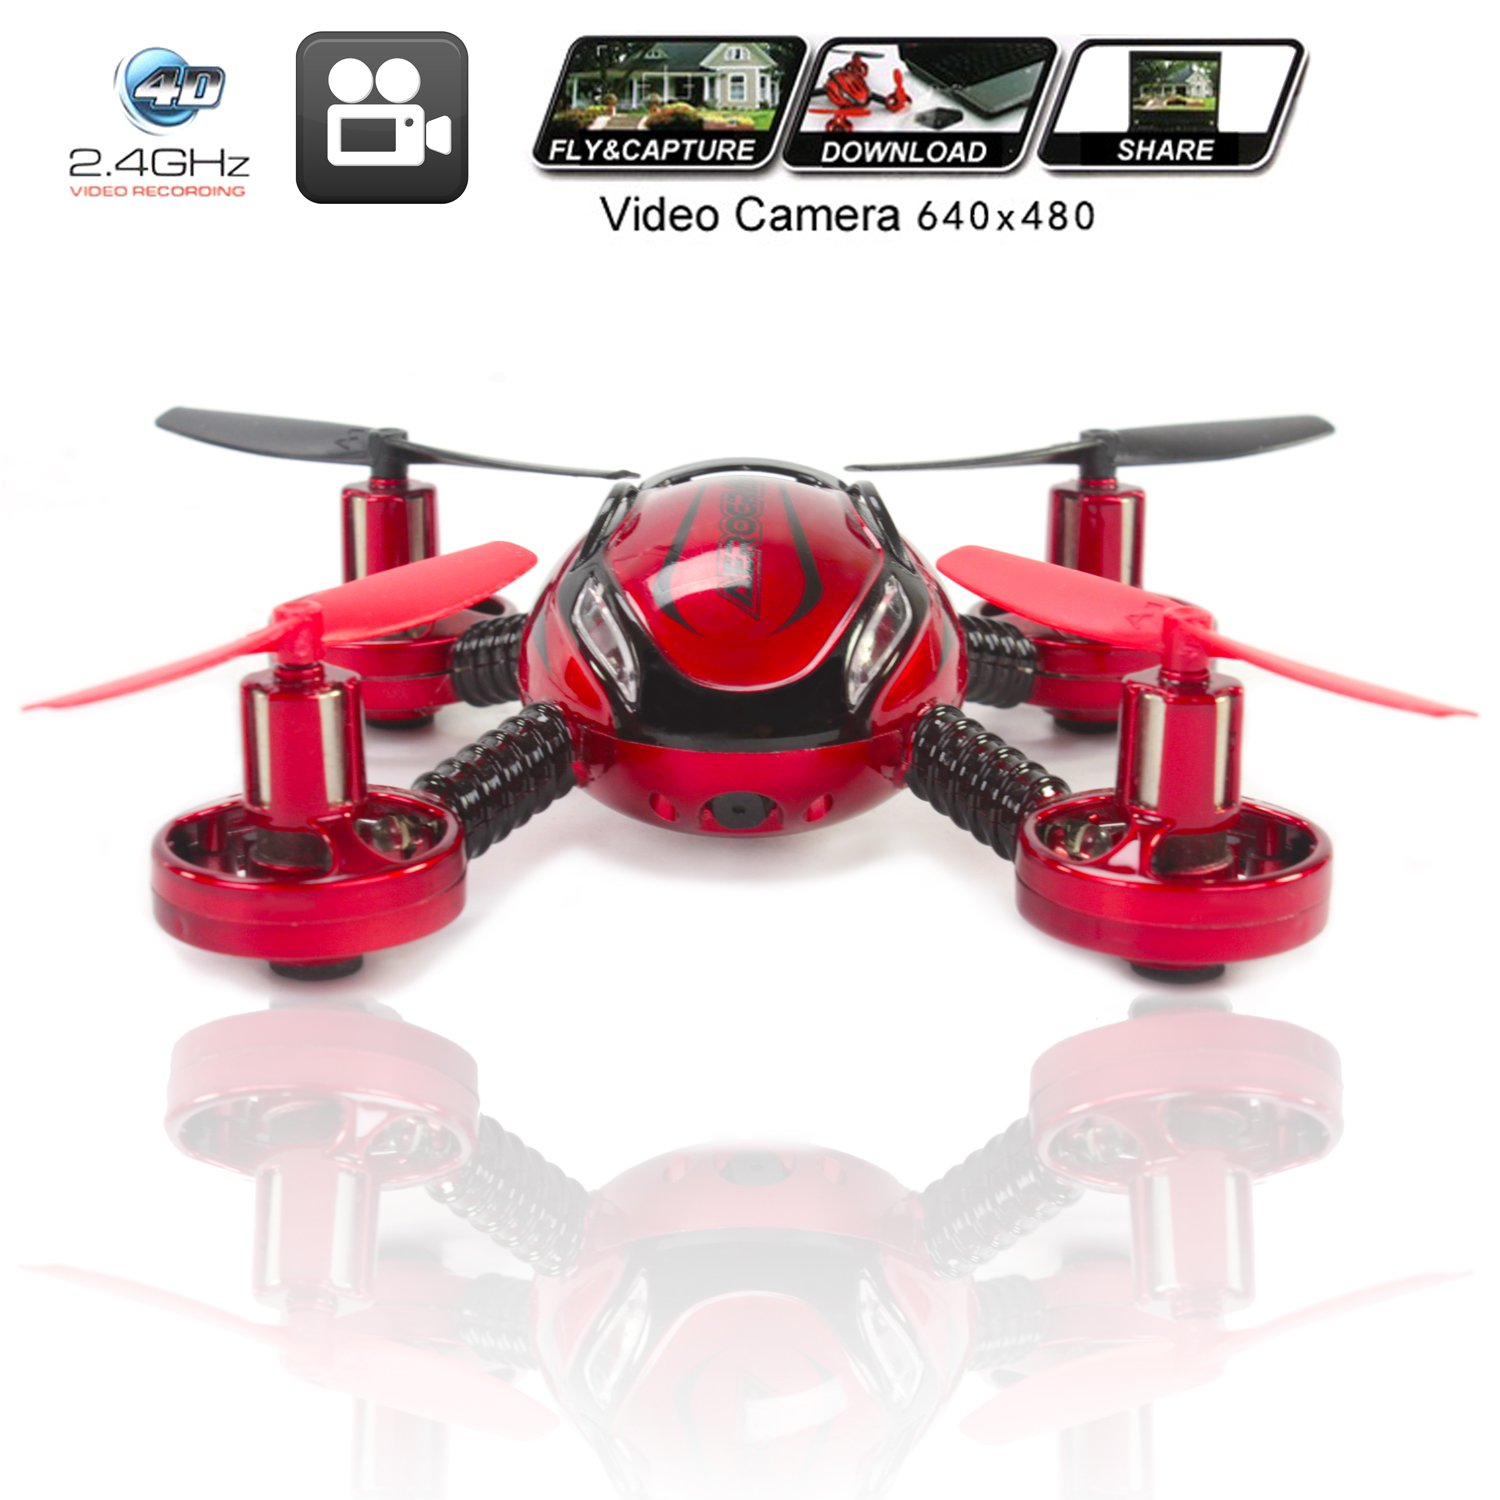 KiiToys Drone with Camera Quadcopter JXD 392 - Mini Drones - Built in  Camera, Easy Flight Control, Stable Landing, Fast Response Remote, 4GB SD  Card &